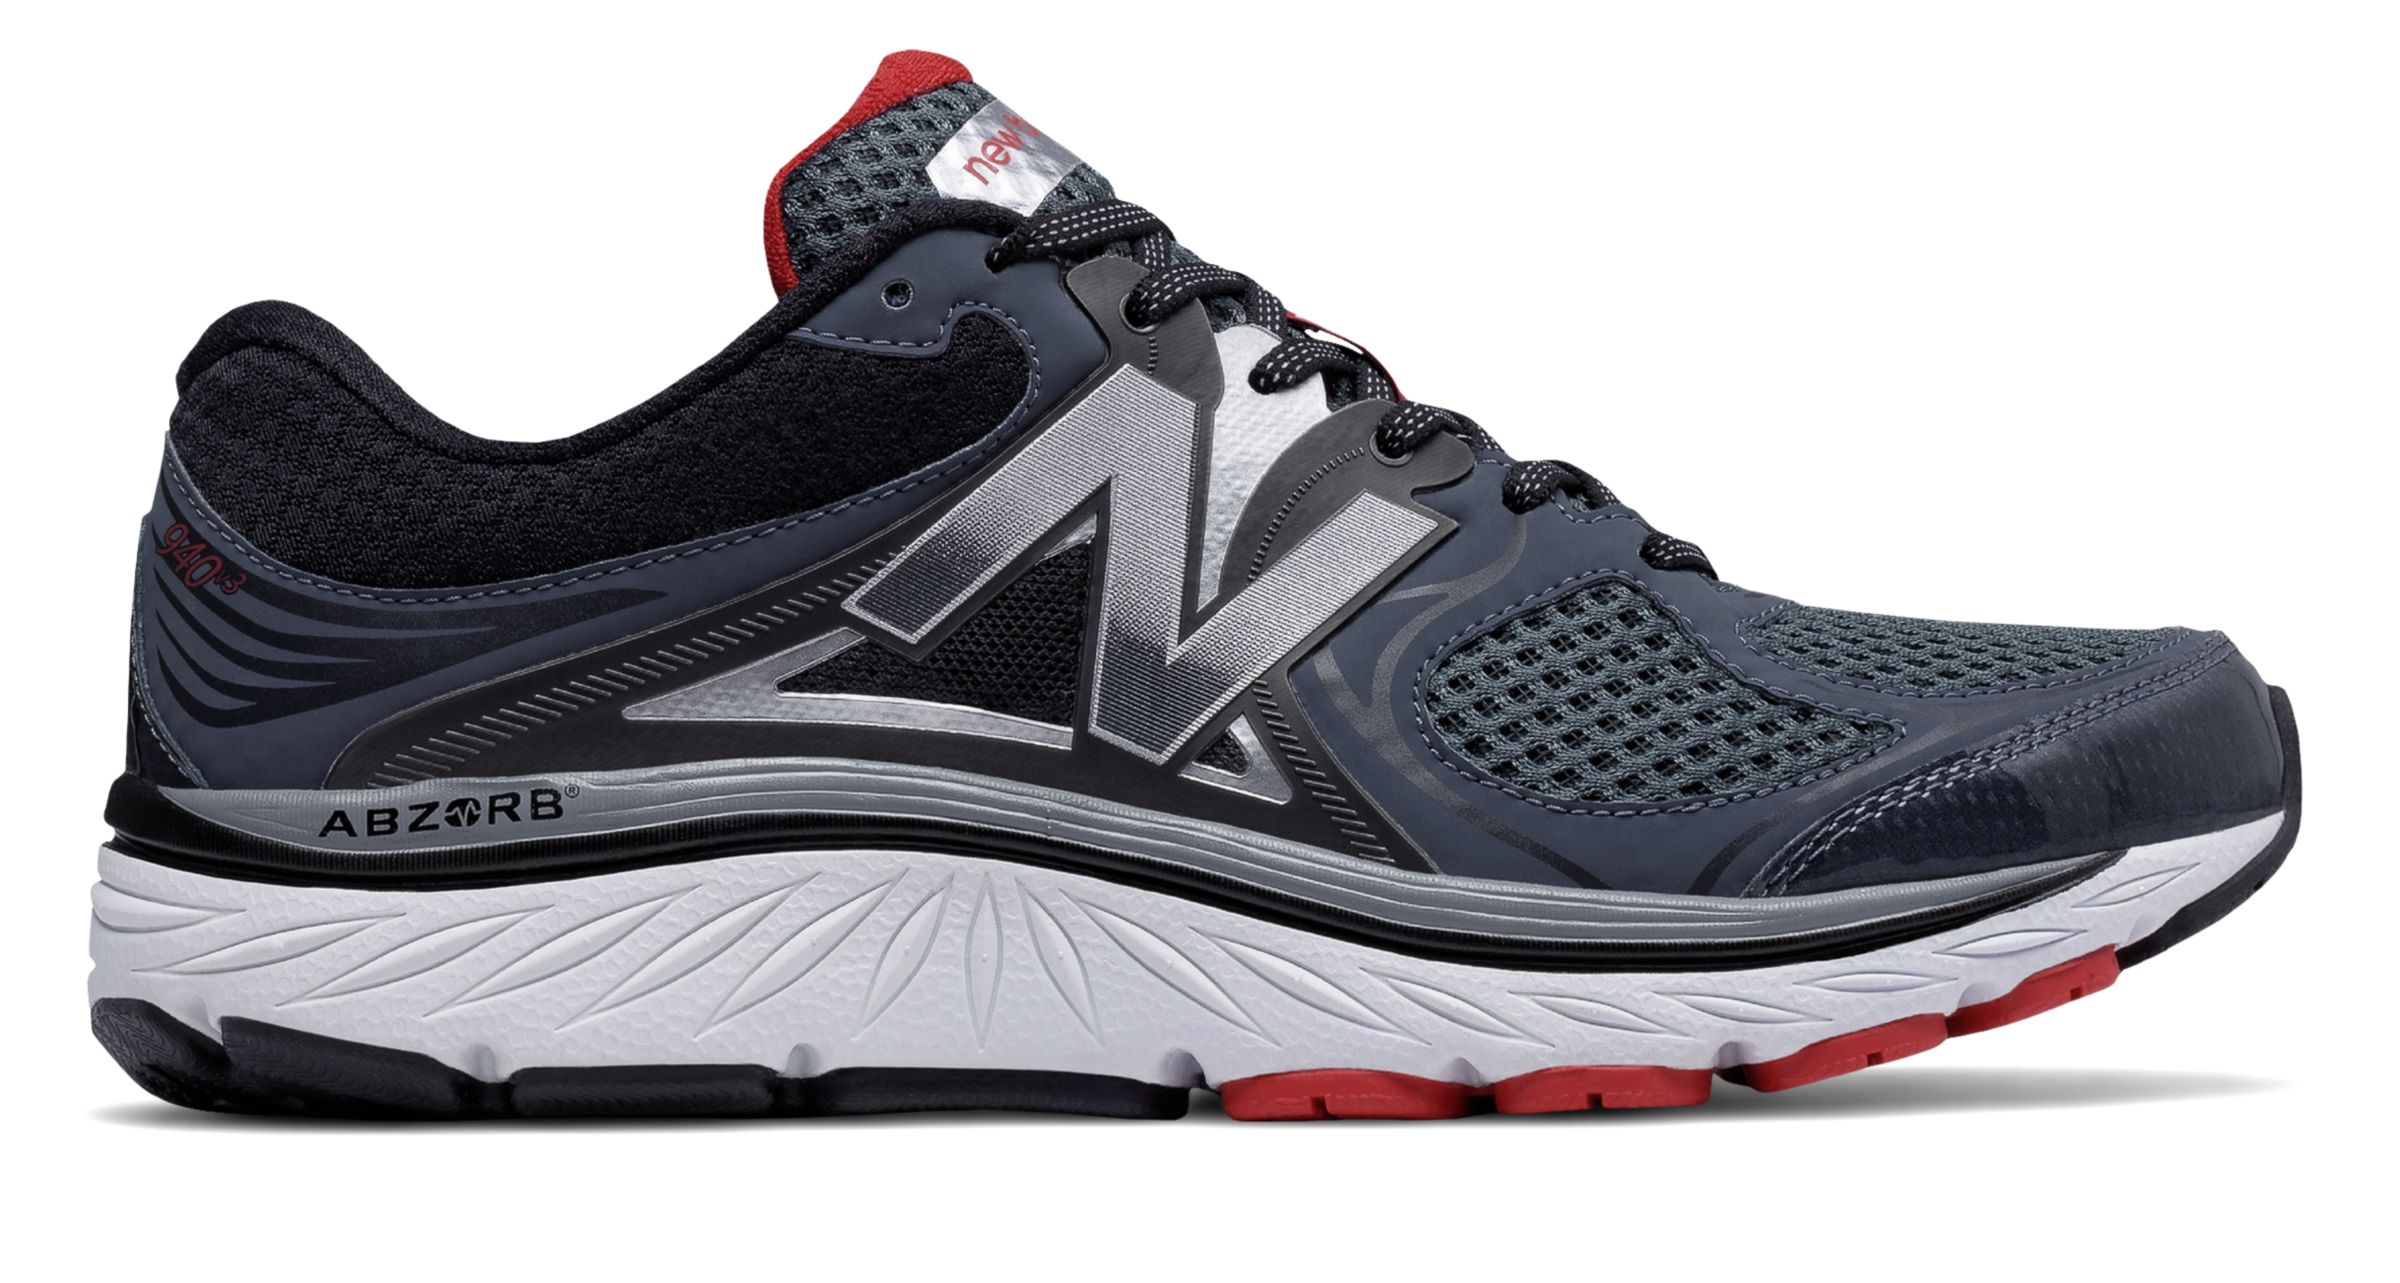 NB New Balance 940v3, Black with Red & Silver